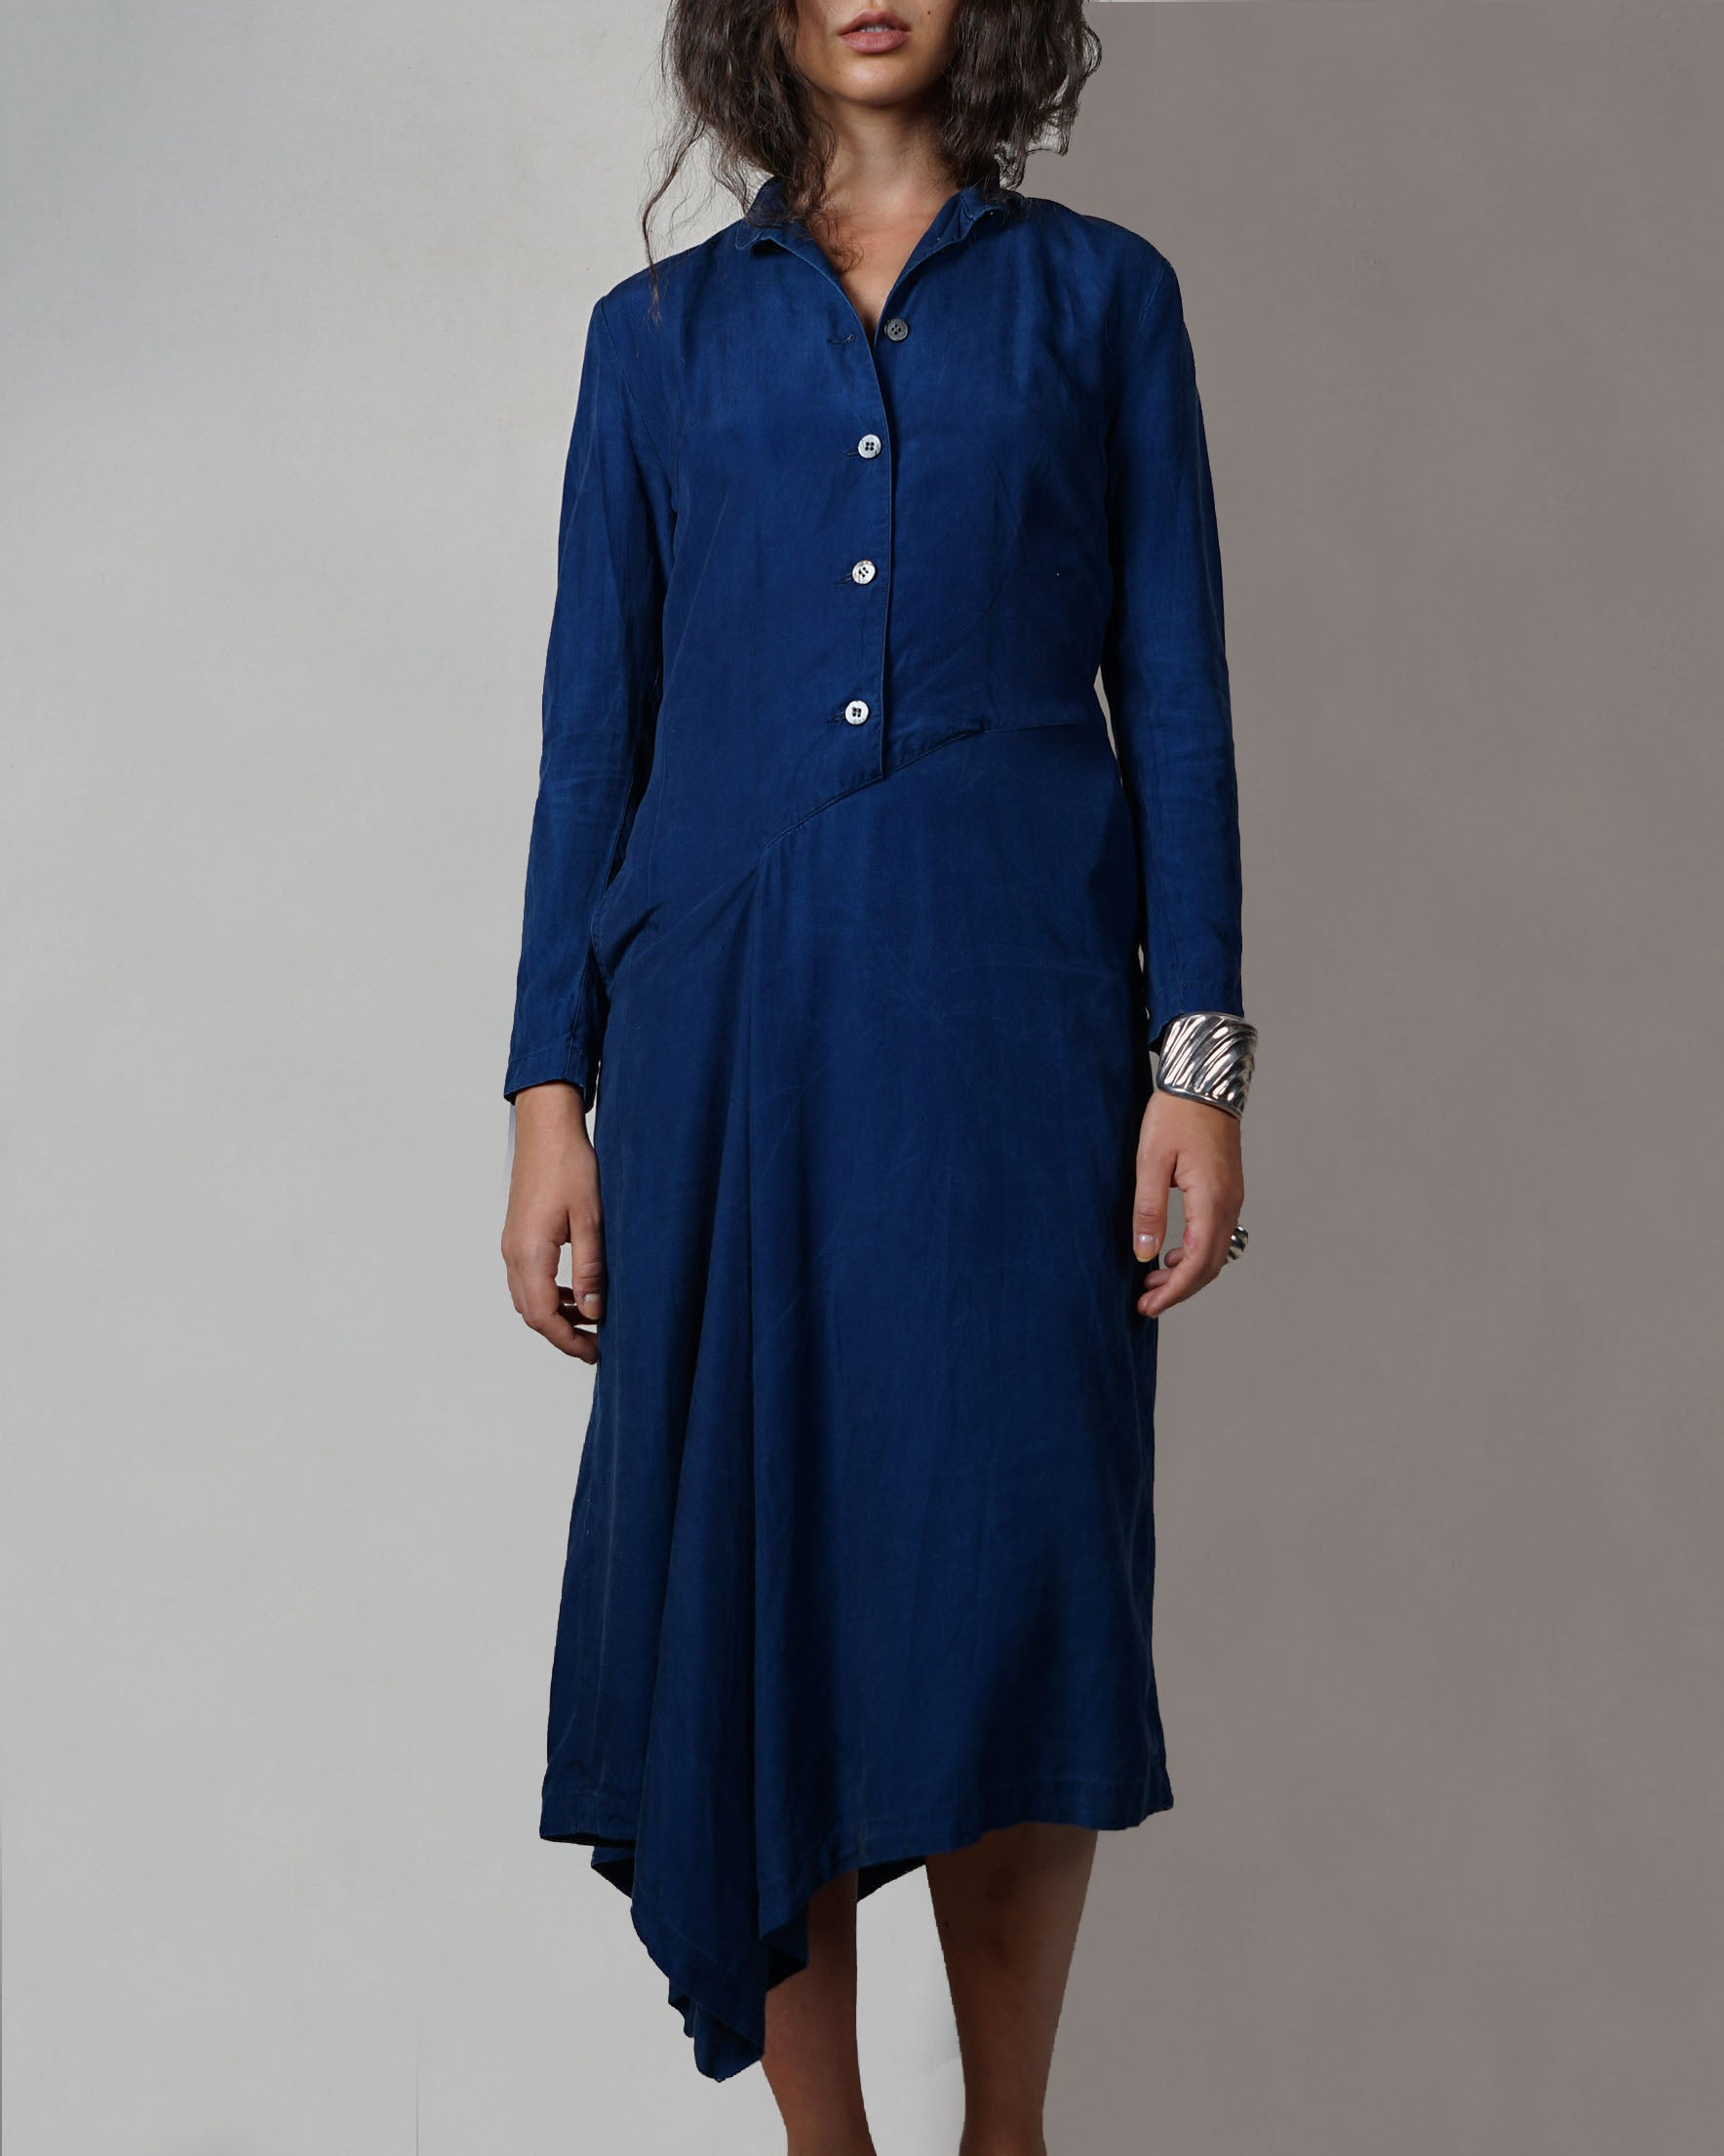 Indigo Asymmetry Dress